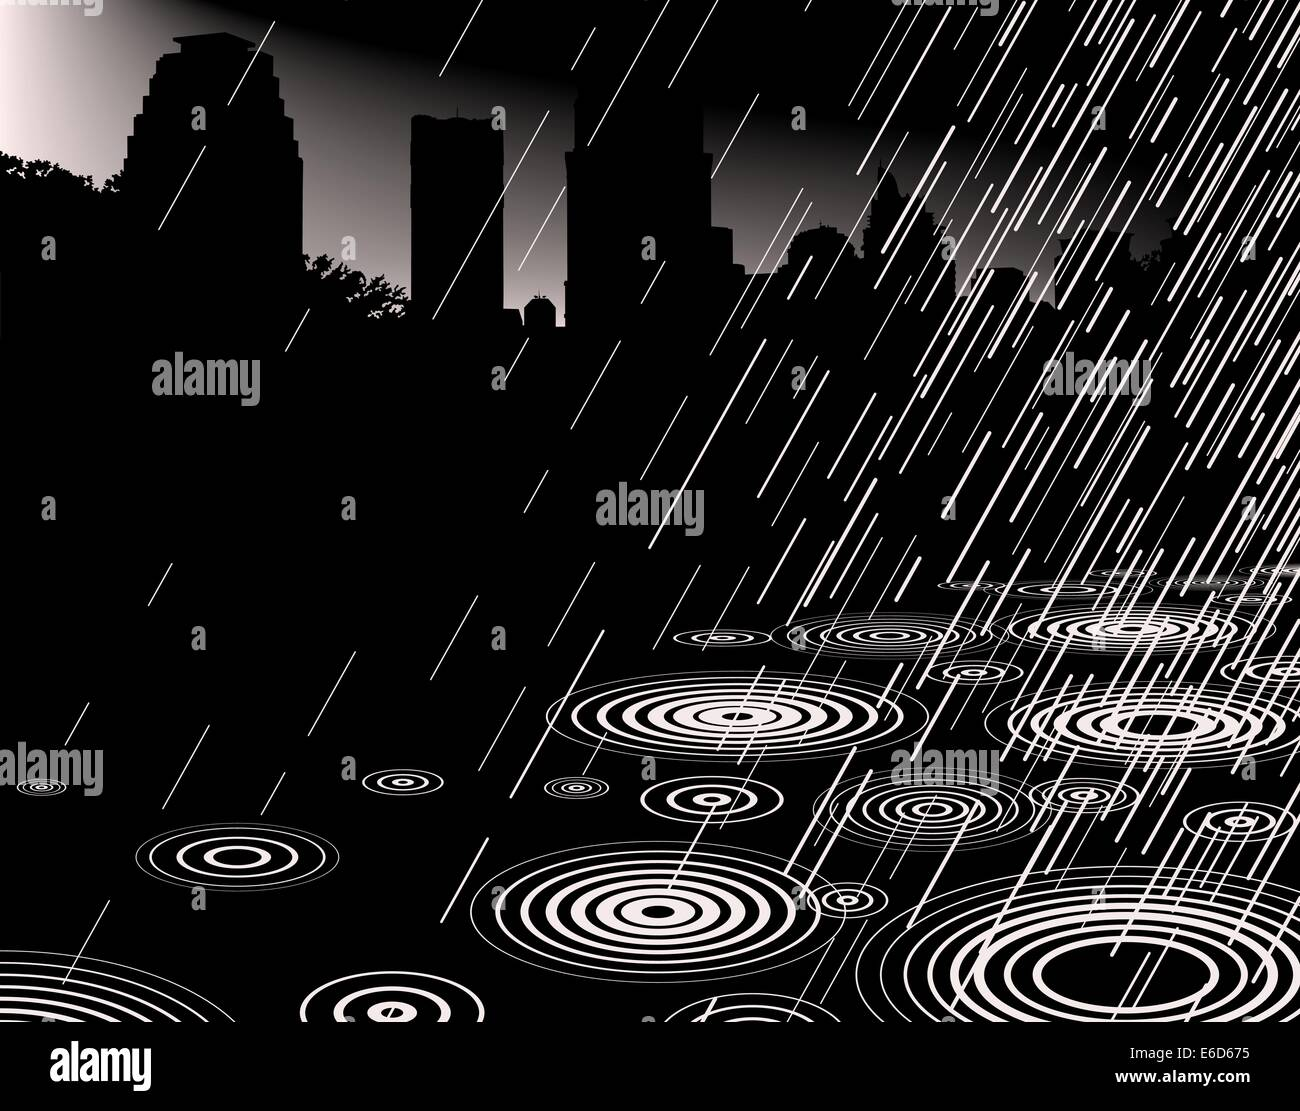 Editable vector illustration of rain with a city skyline and copy-space - Stock Vector